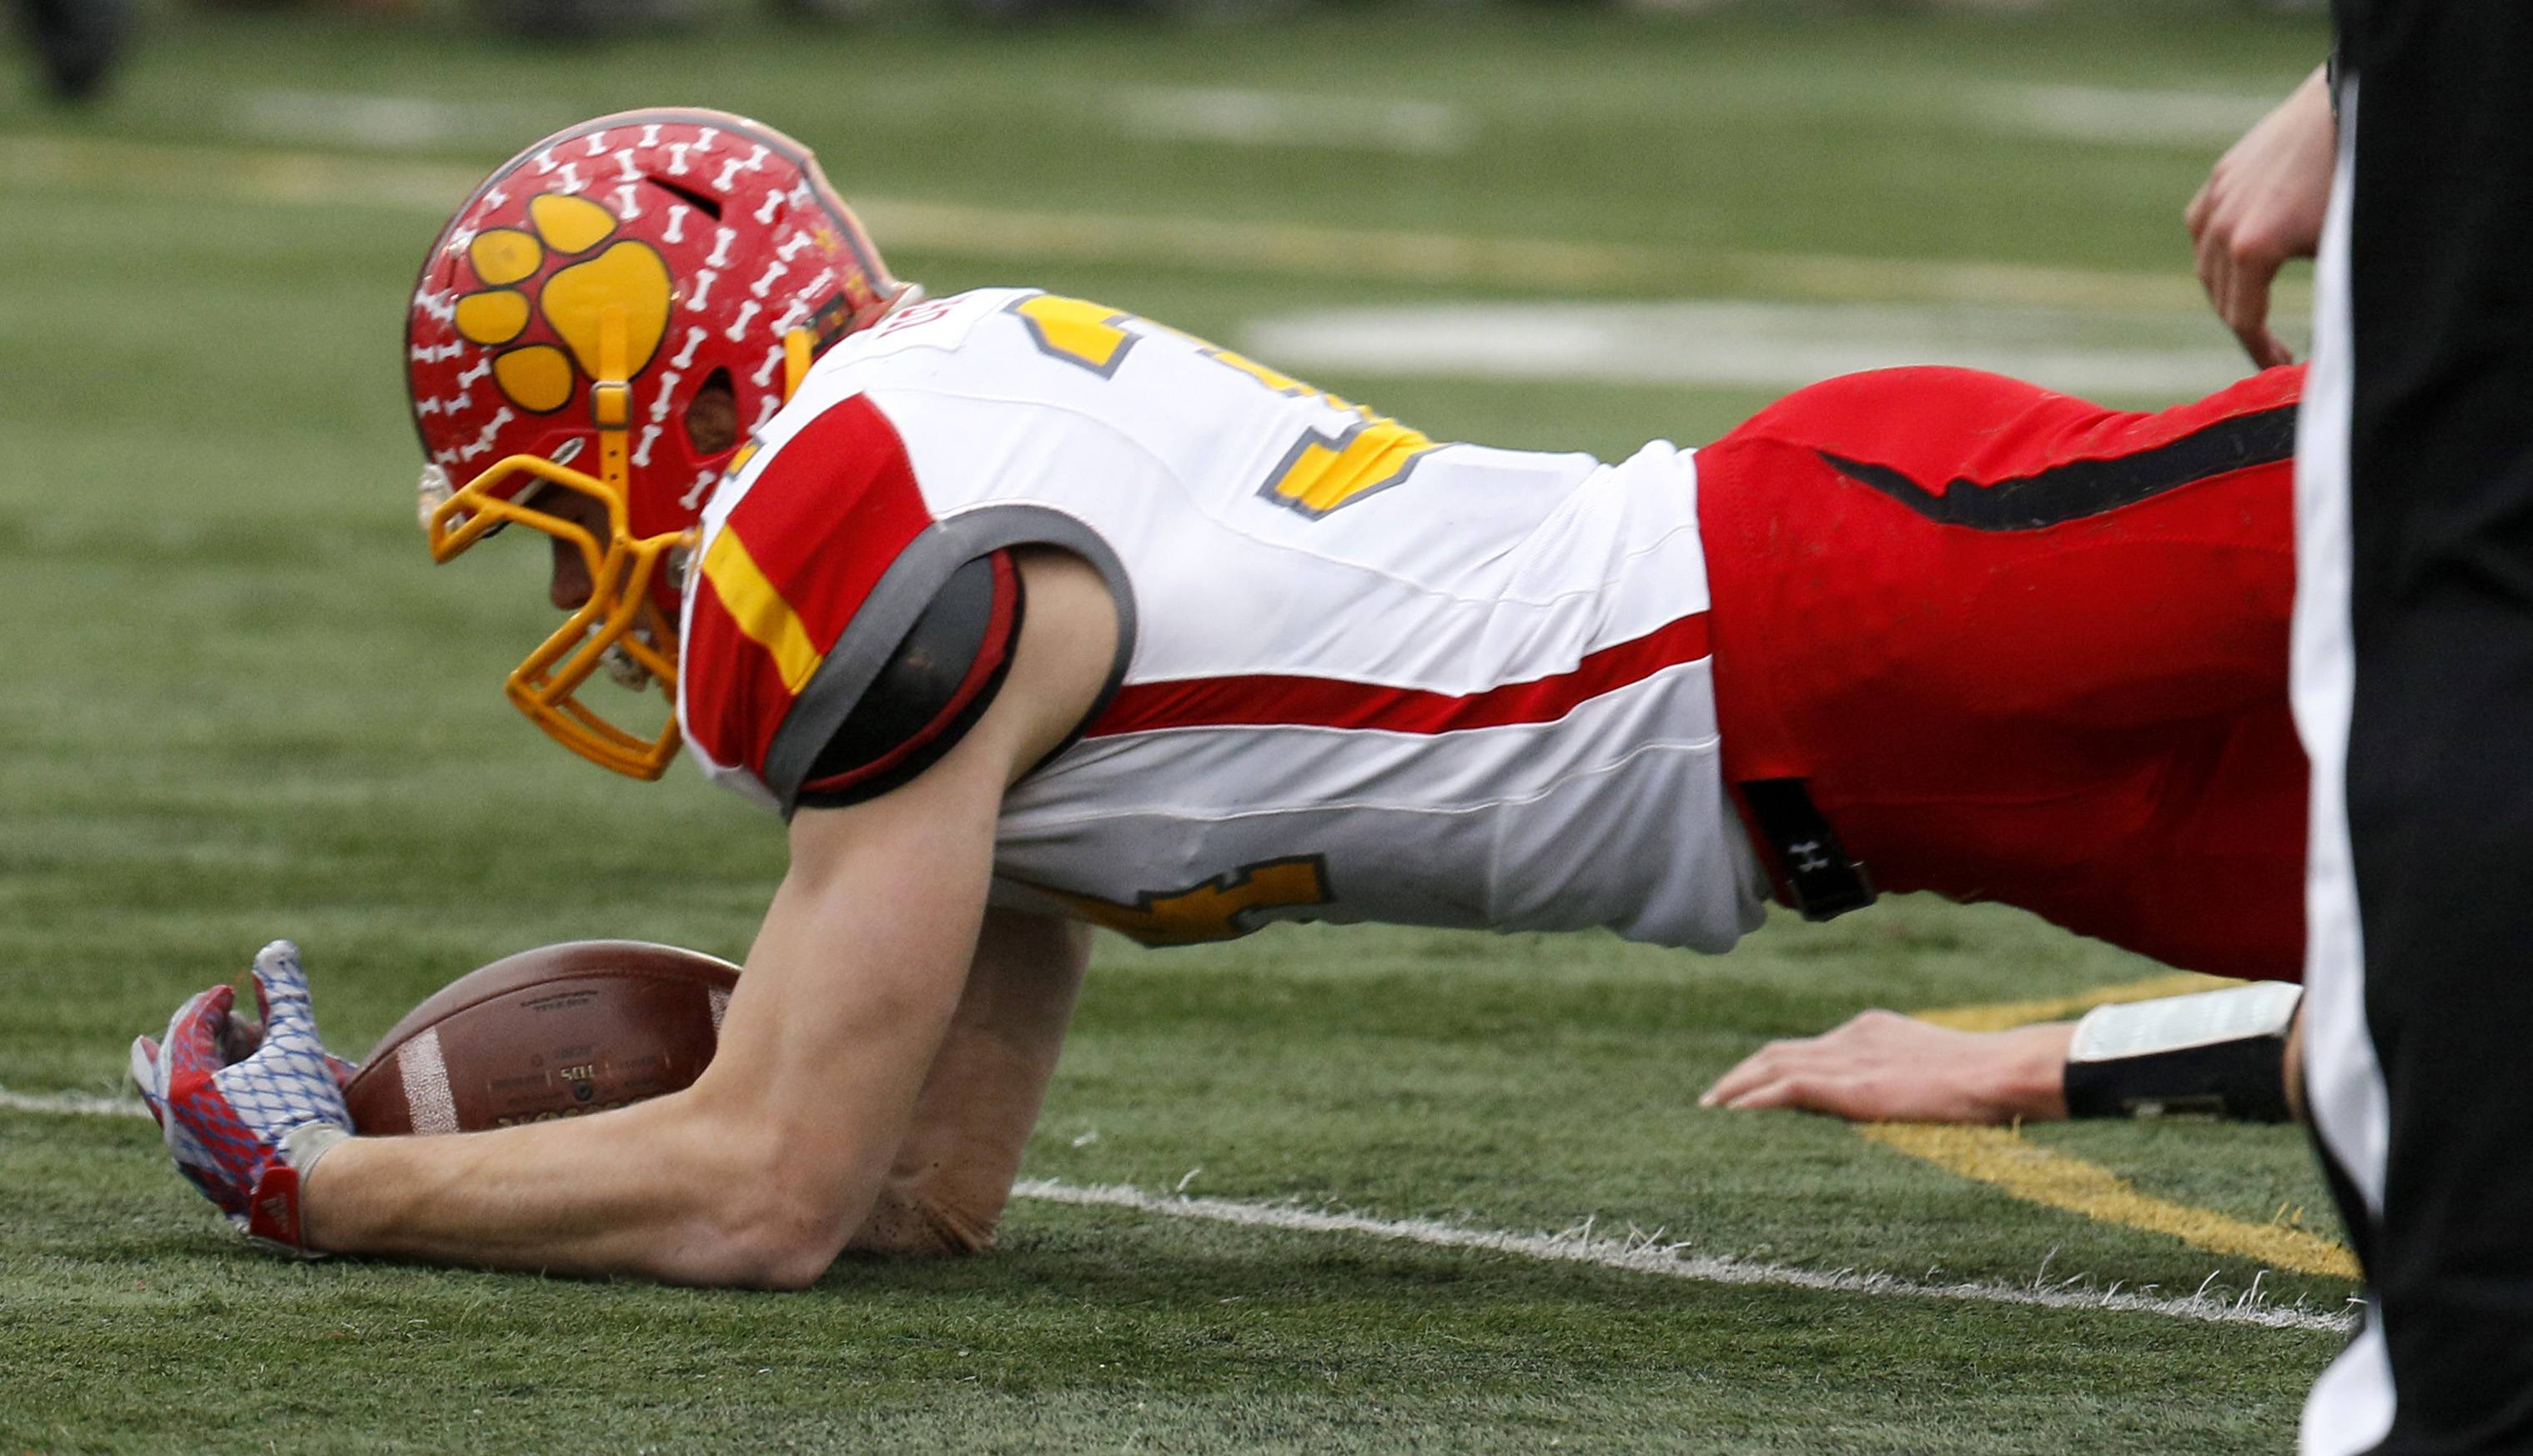 Batavia's Quin Urwiler recovers a second half fumble against Lincoln-Way West during Class 7A football quarterfinal action in New Lenox.